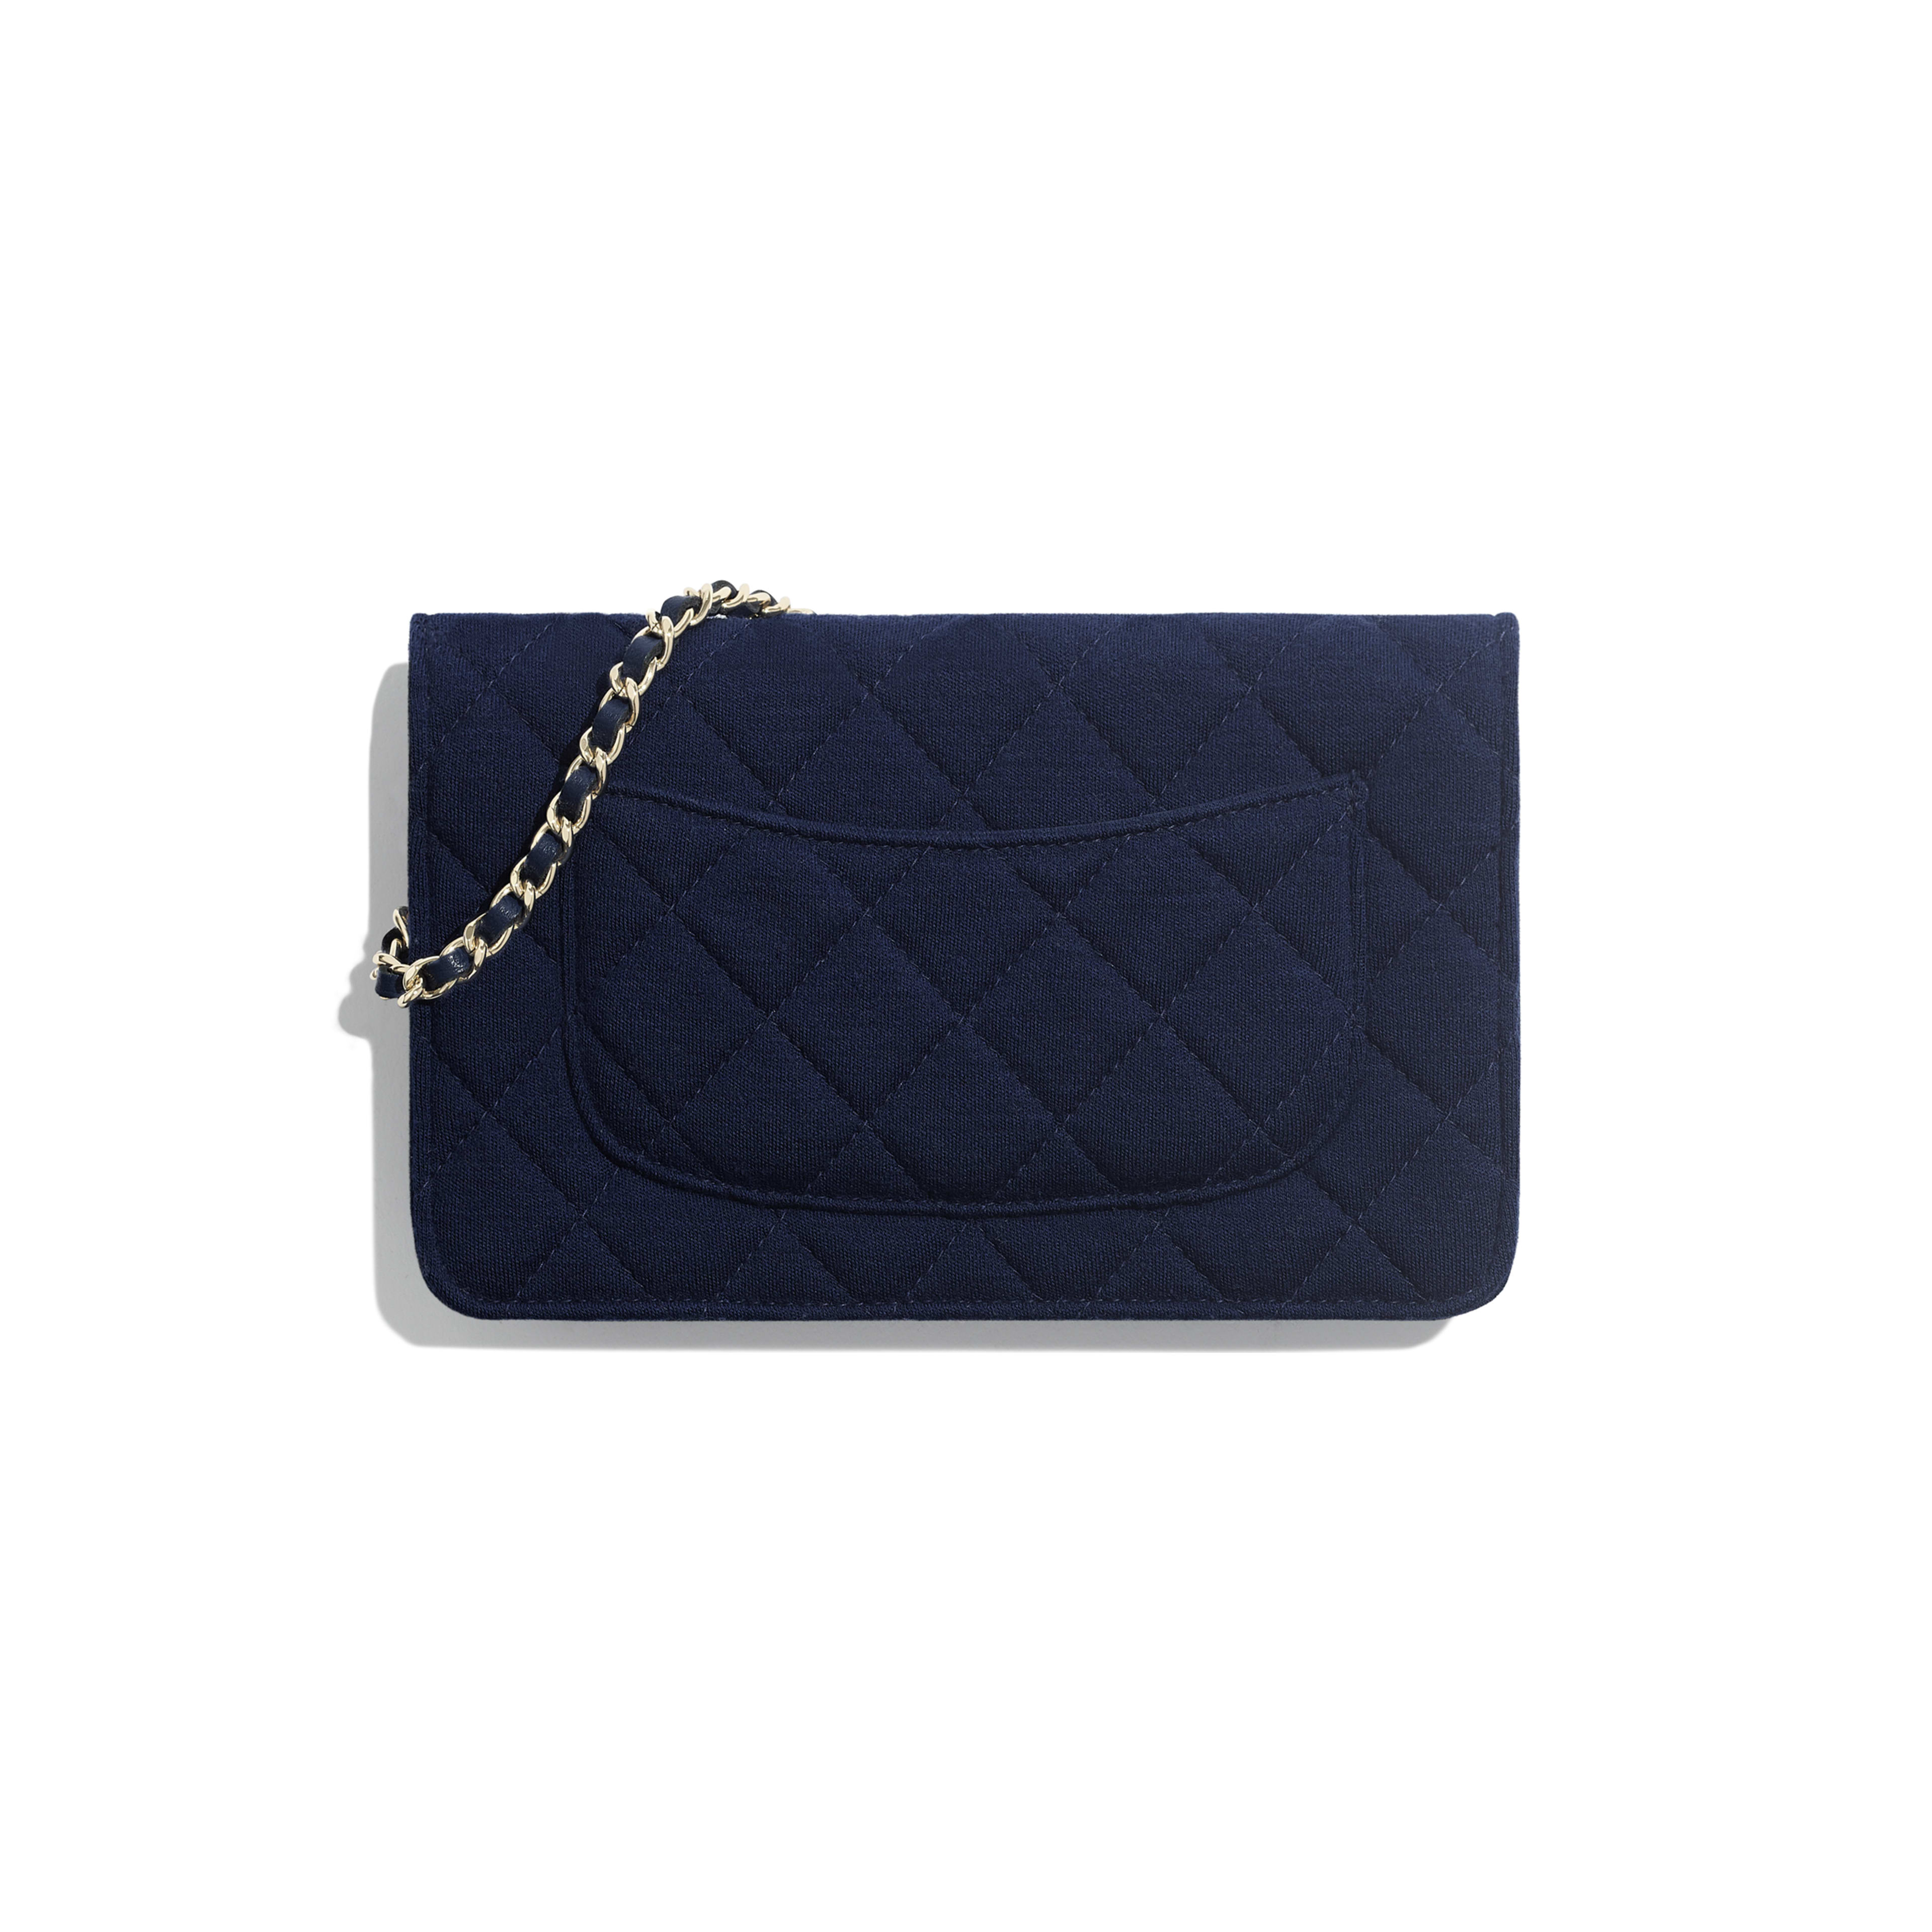 Classic Wallet On Chain - Navy Blue - Jersey & Gold Metal - Alternative view - see full sized version